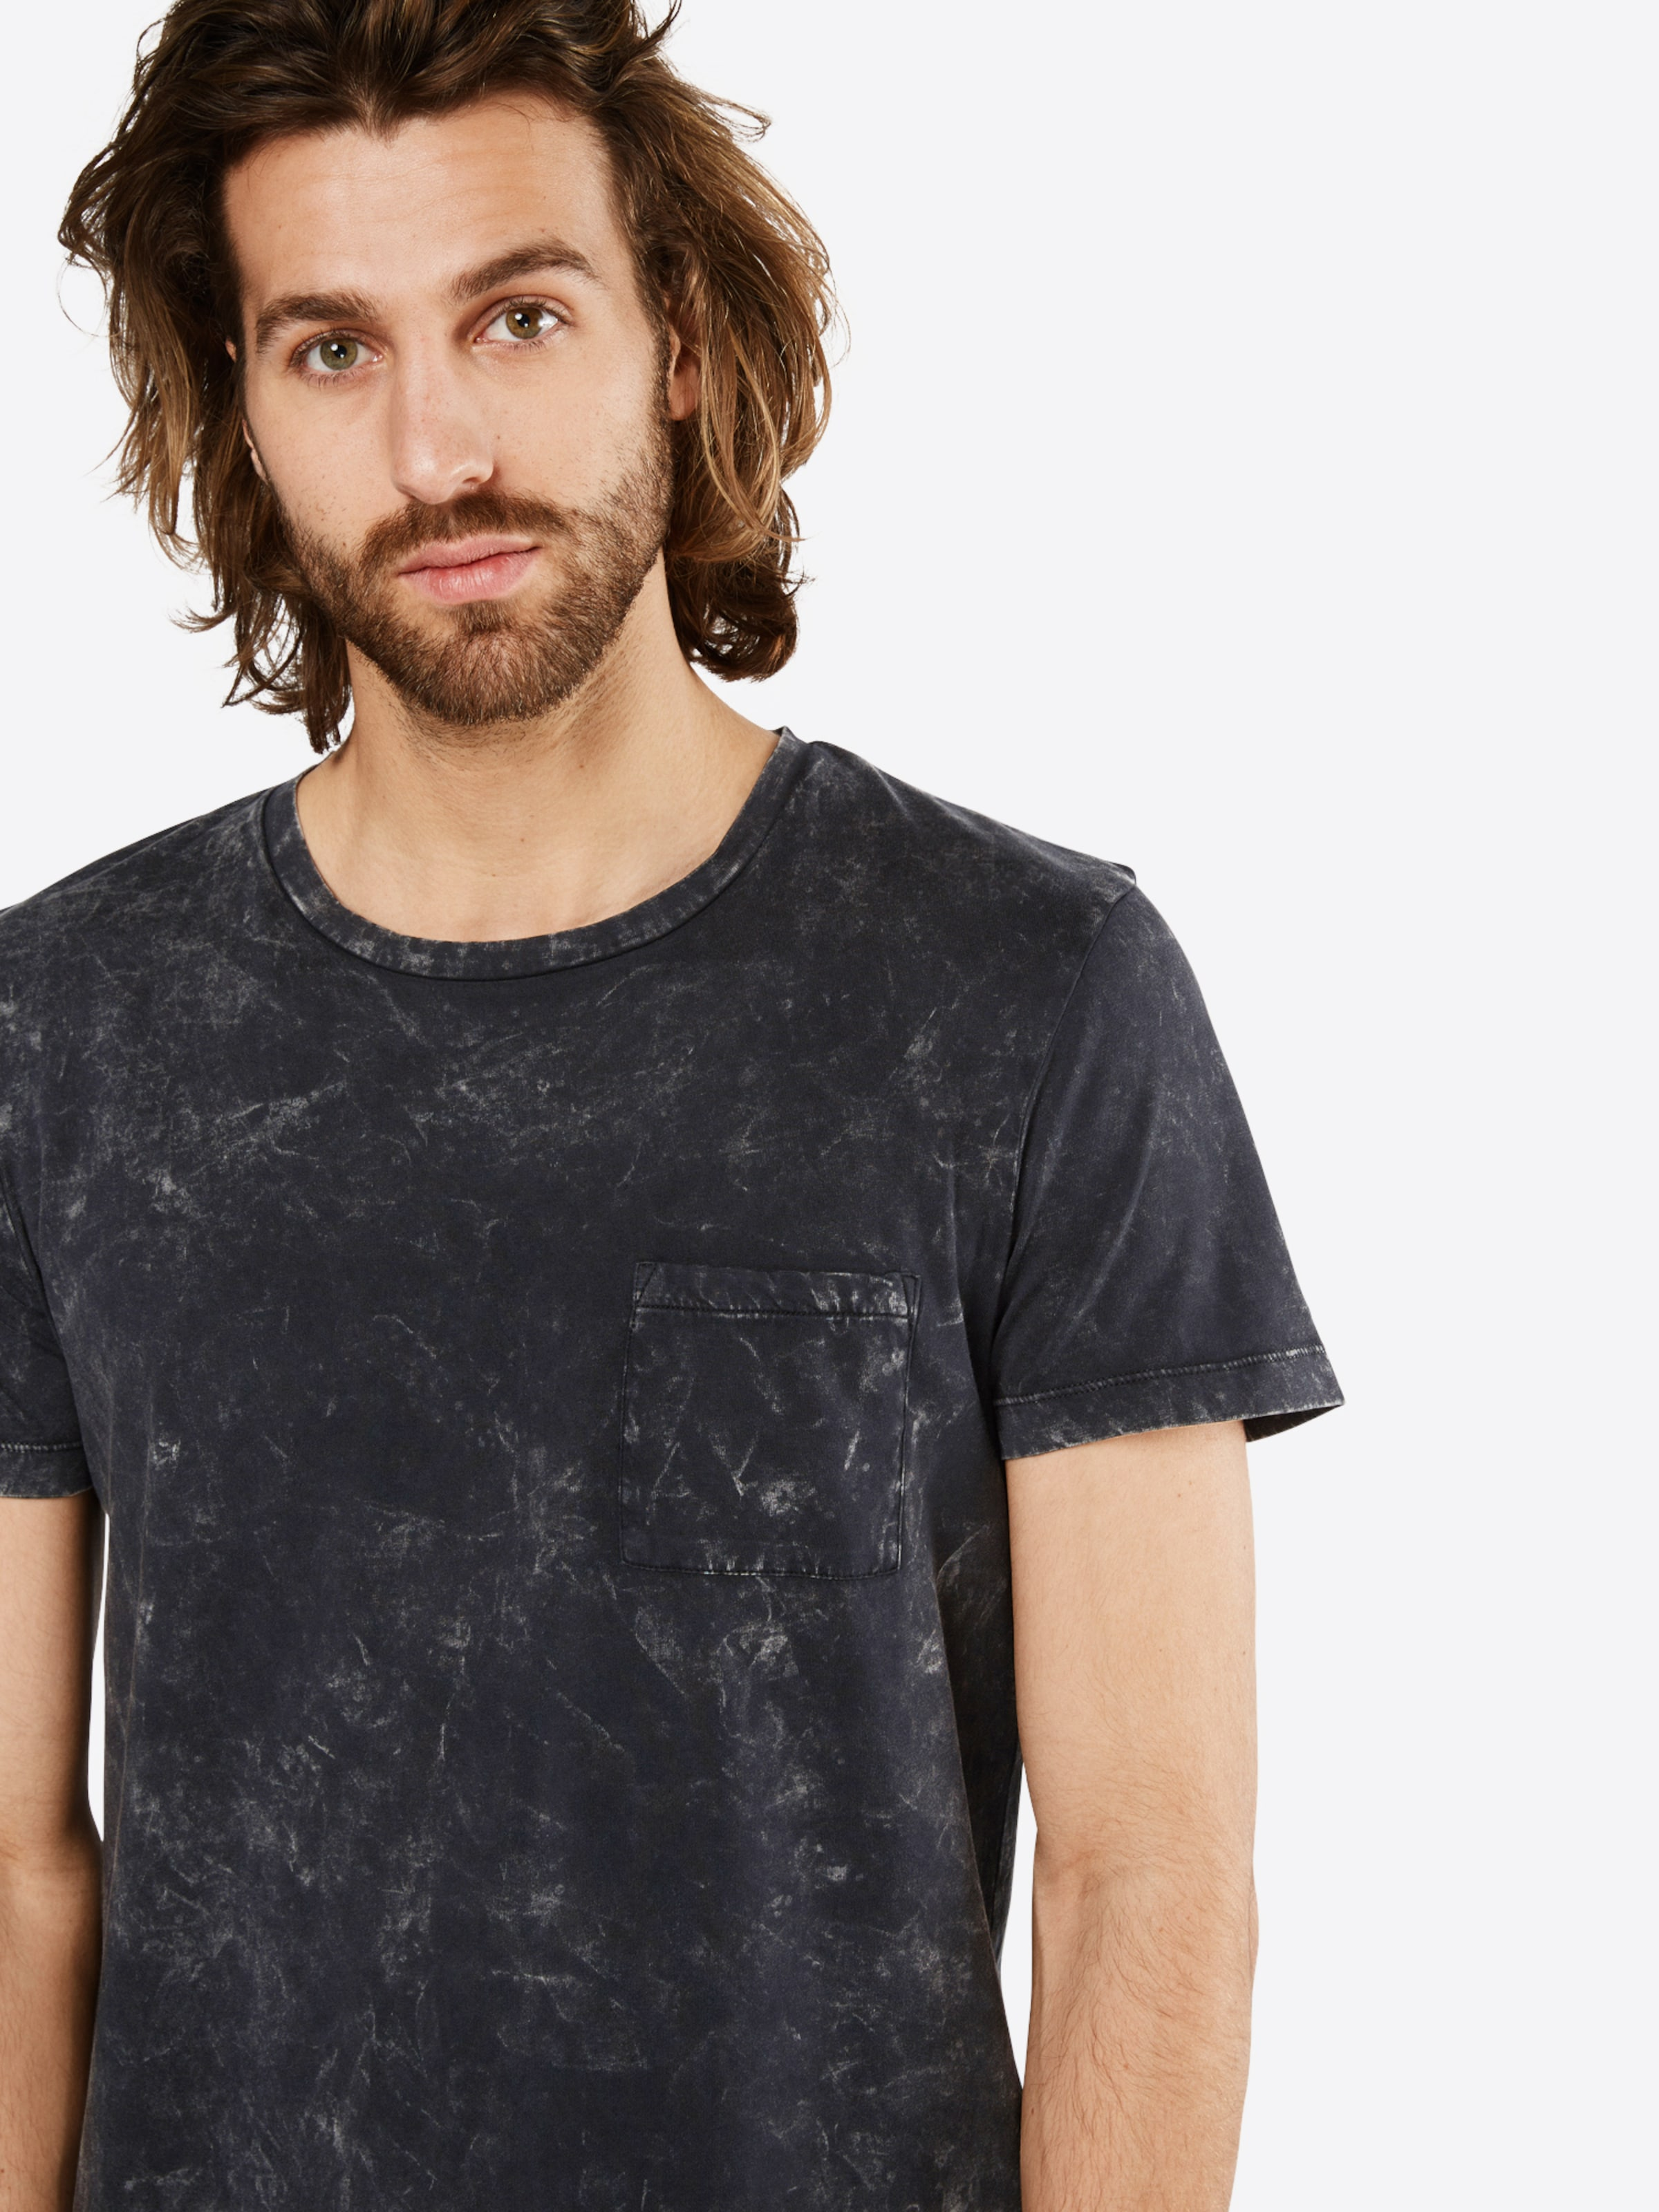 TOM TAILOR DENIM T-Shirt 'Washed tee with pocket' Angebote Günstiger Preis JBuFPVr